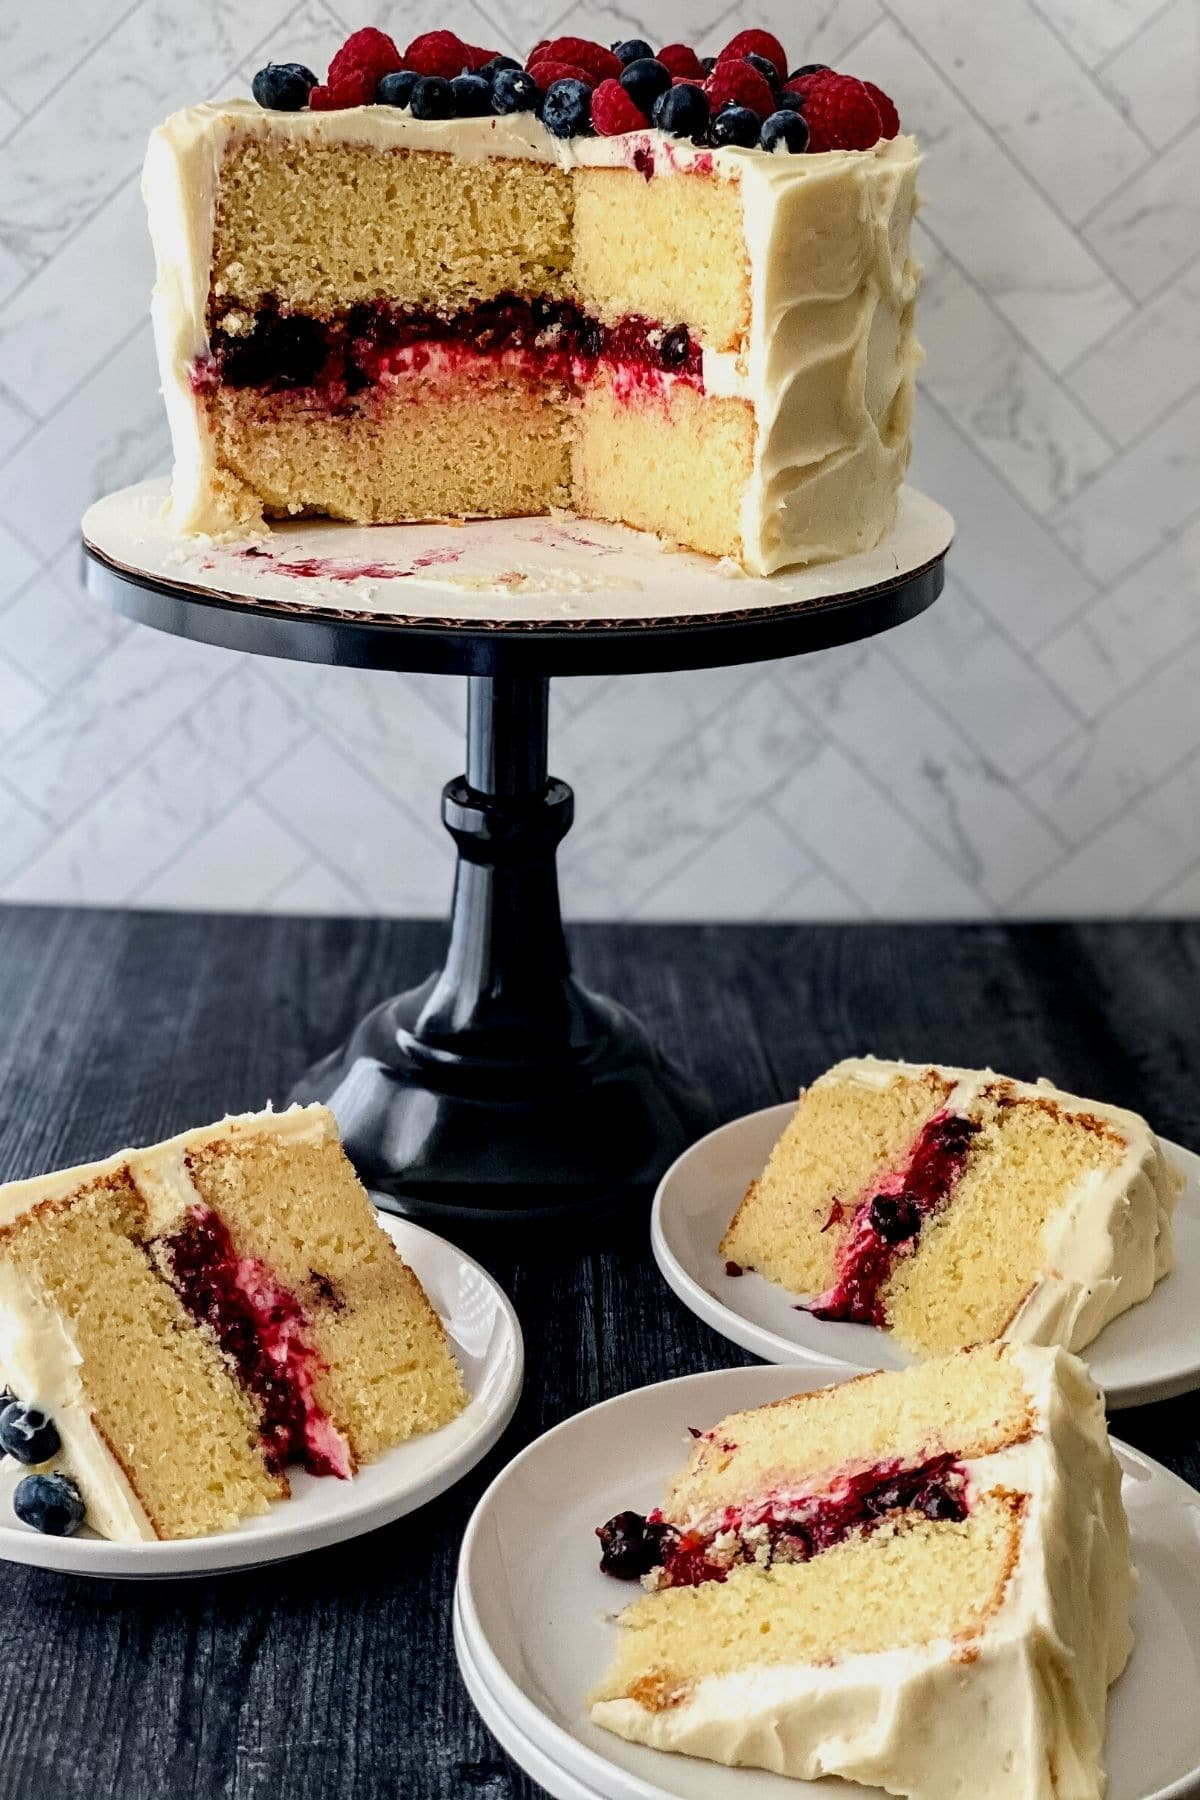 Berry layer cake on black cake stand with slices on plates